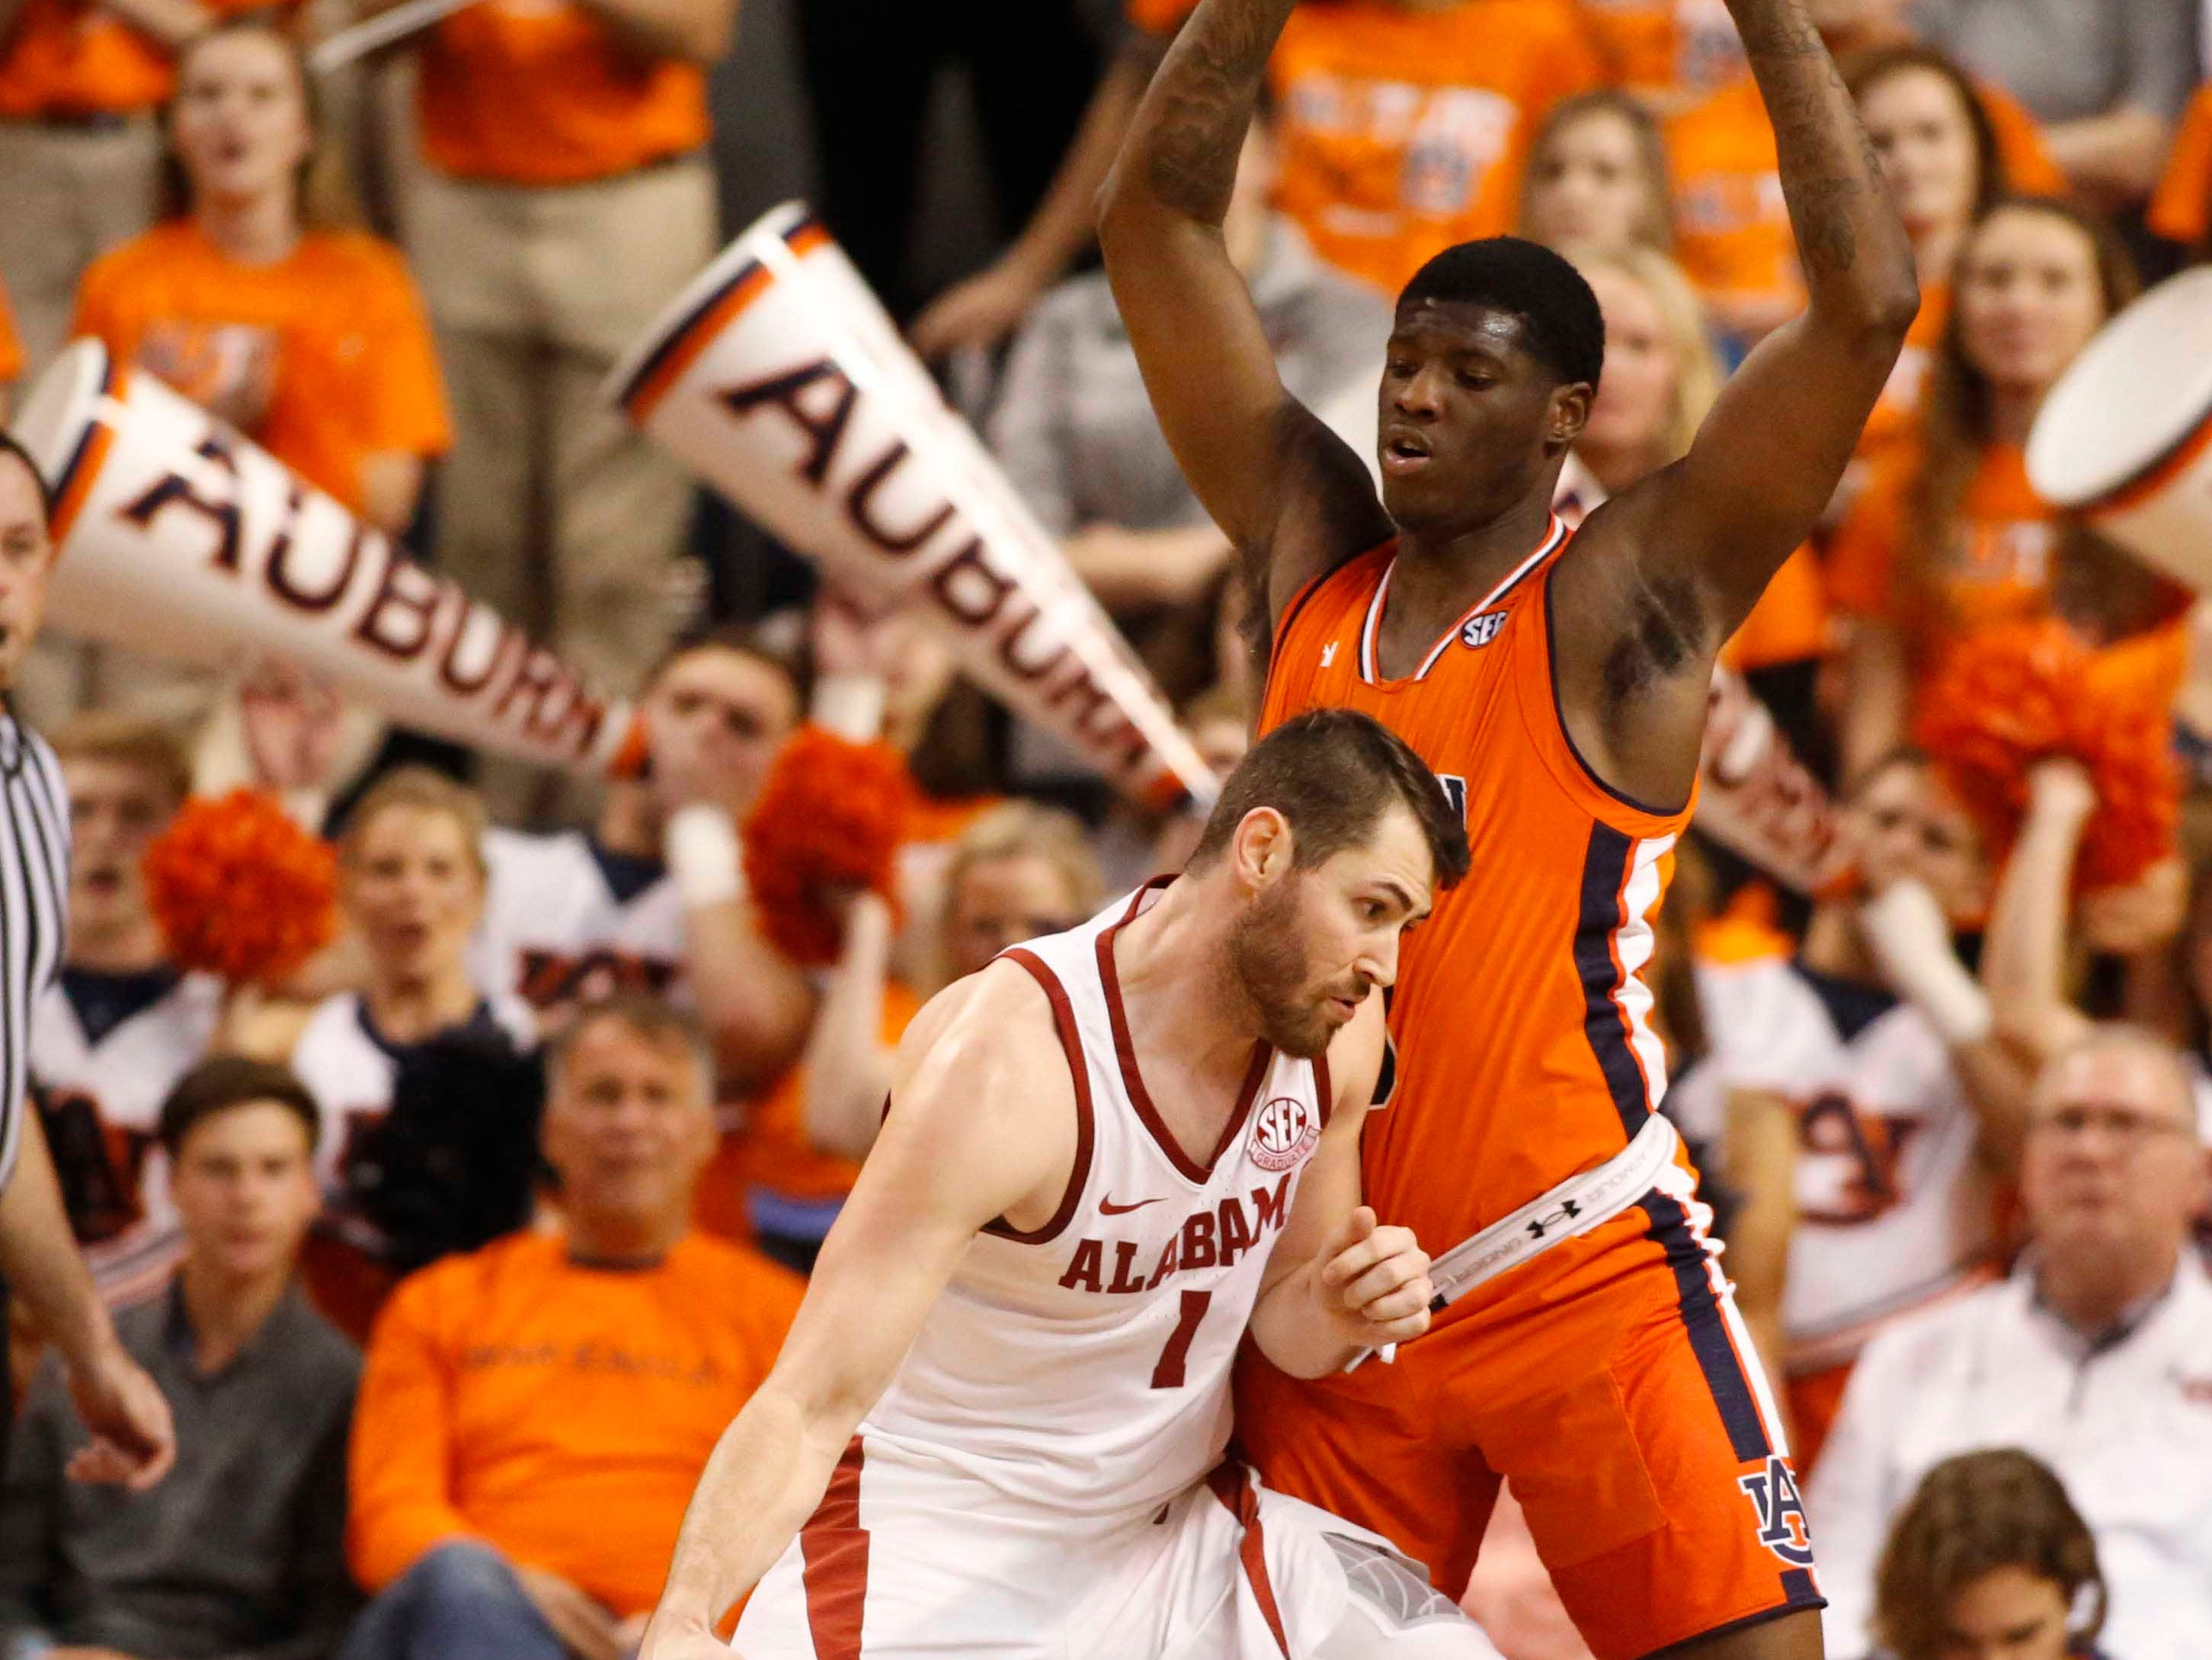 Feb 2, 2019; Auburn, AL, USA; Alabama Crimson Tide guard Riley Norris (1) is blocked by Auburn Tigers forward Daniel Purifoy (3) during the second half at Auburn Arena. Mandatory Credit: John Reed-USA TODAY Sports